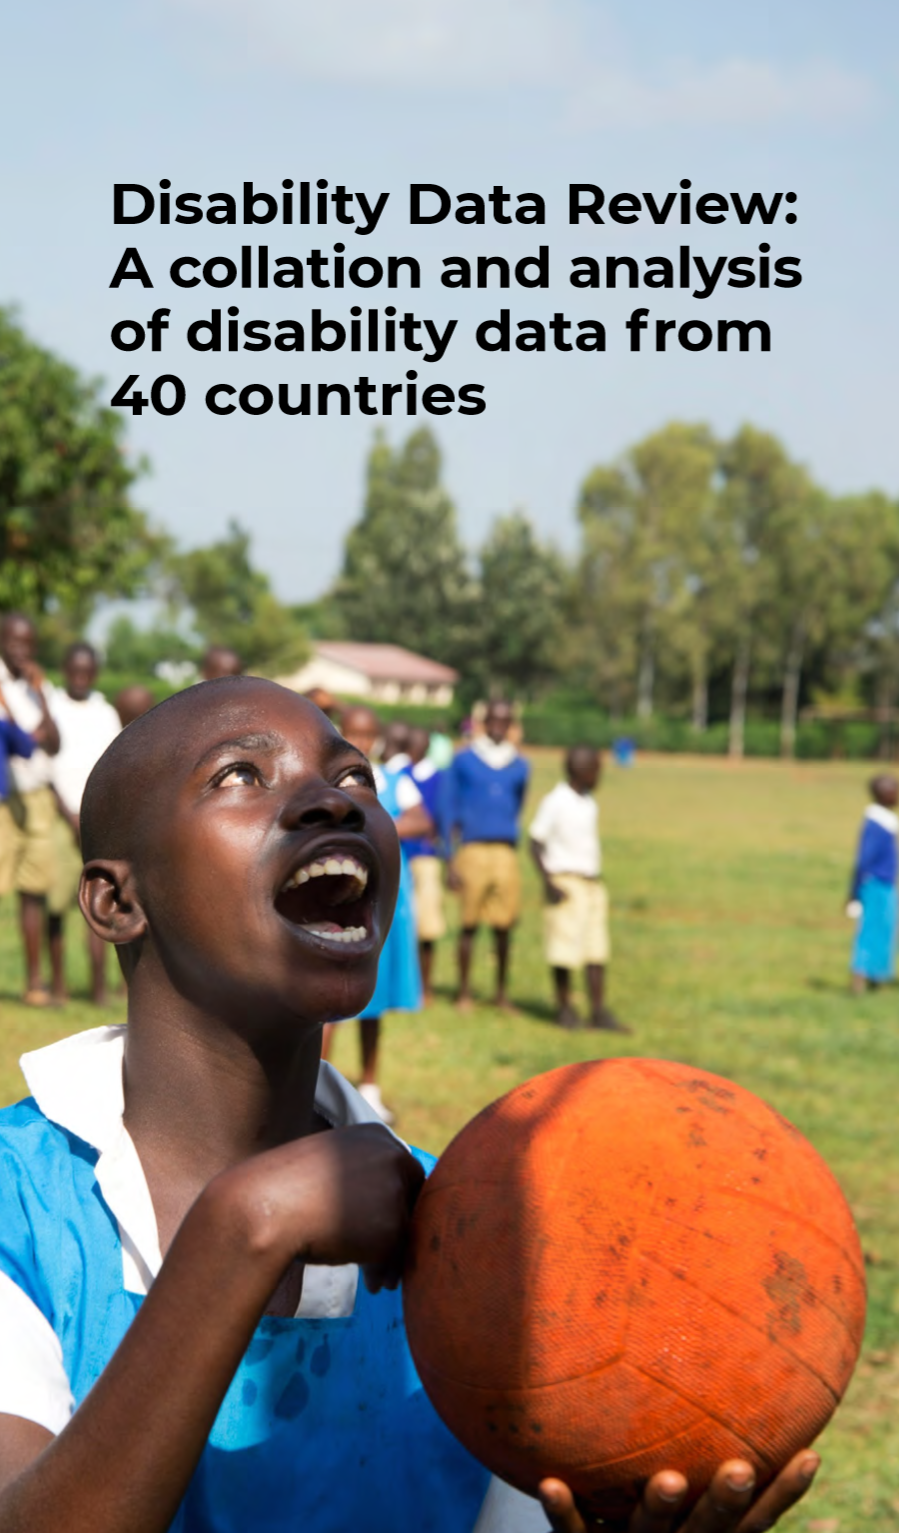 """Cover of a report entitled """"Disability Data Review: A collation and analysis of disability data from 40 countries"""". The color image on the cover shows an adolescent boy looking toward the sky while holding a large orange ball in his hands. More children are playing behind him in an open green field. Trees are visible further in the background."""